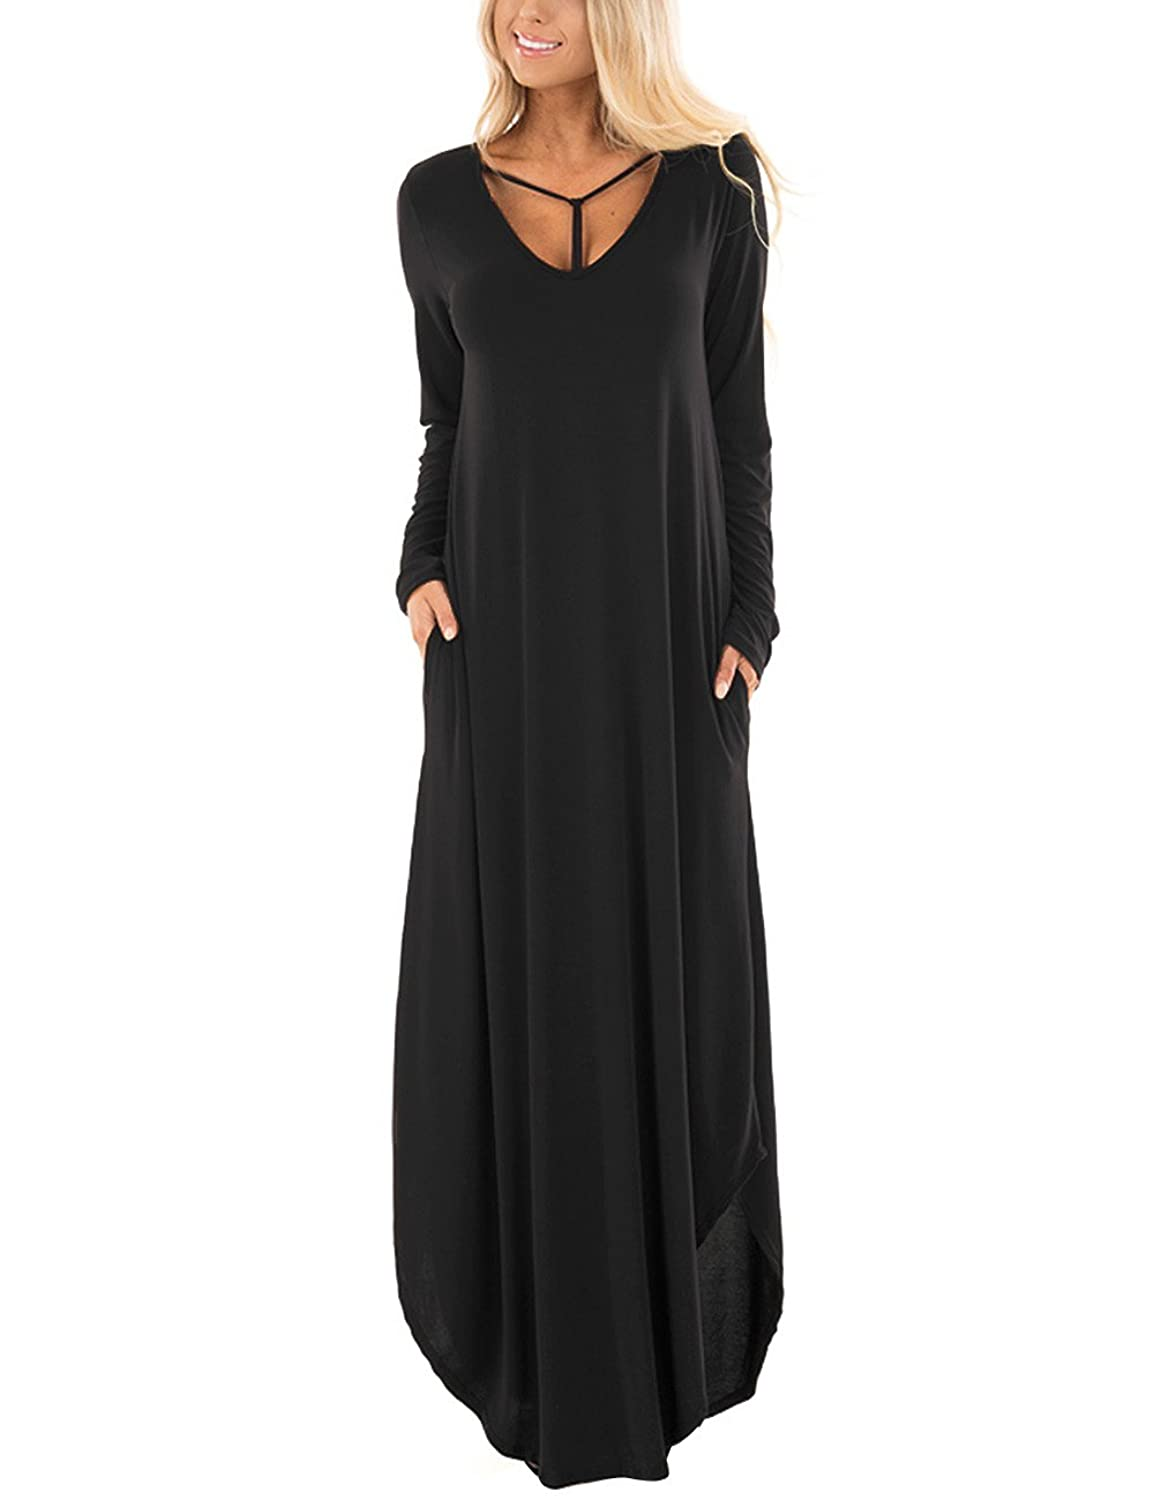 ACKKIA Women's Casual Long Sleeve Y Straps Round Hem Long Maxi Dress with Pocket